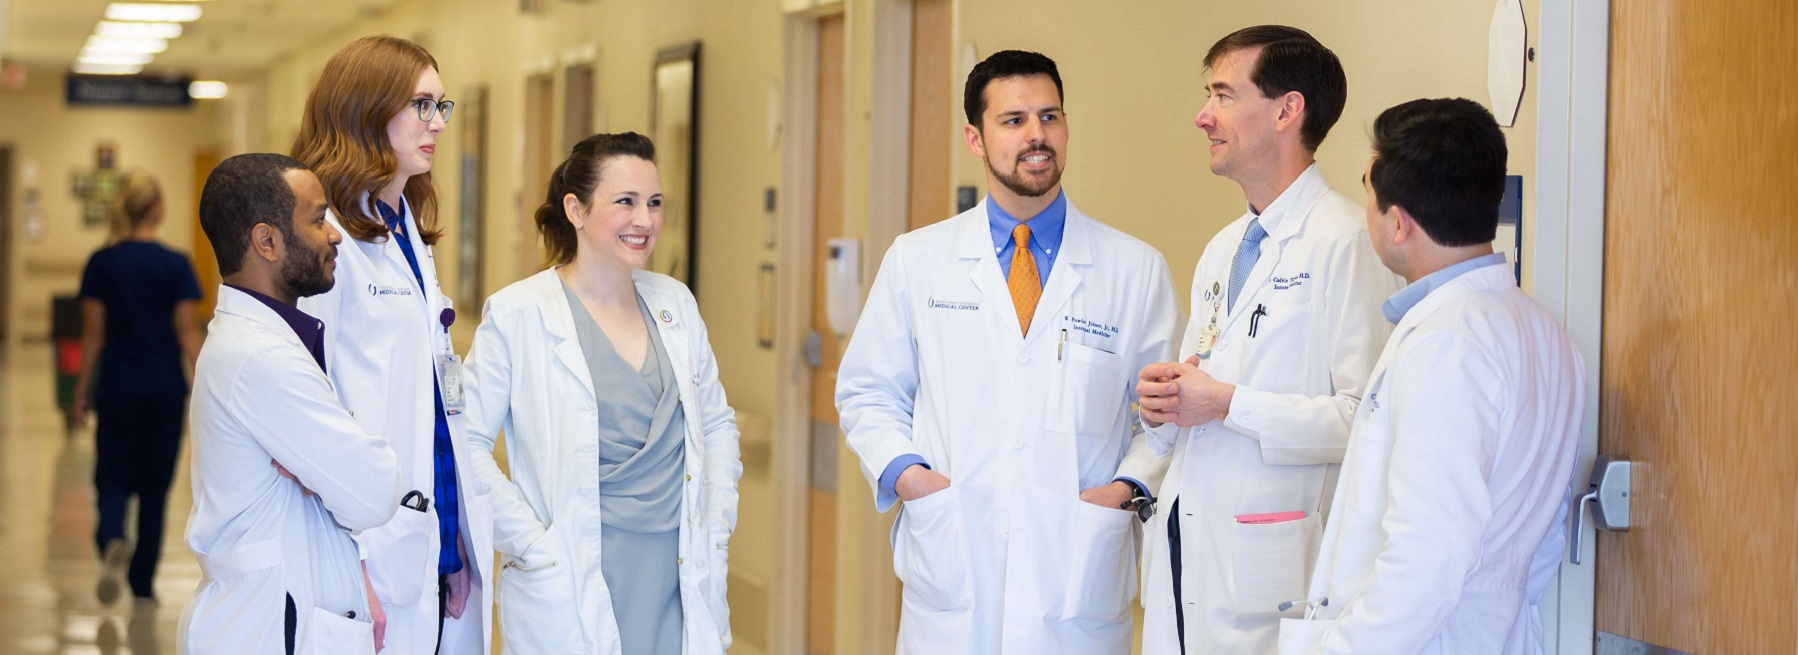 Residents and physicians make rounds at UMMC